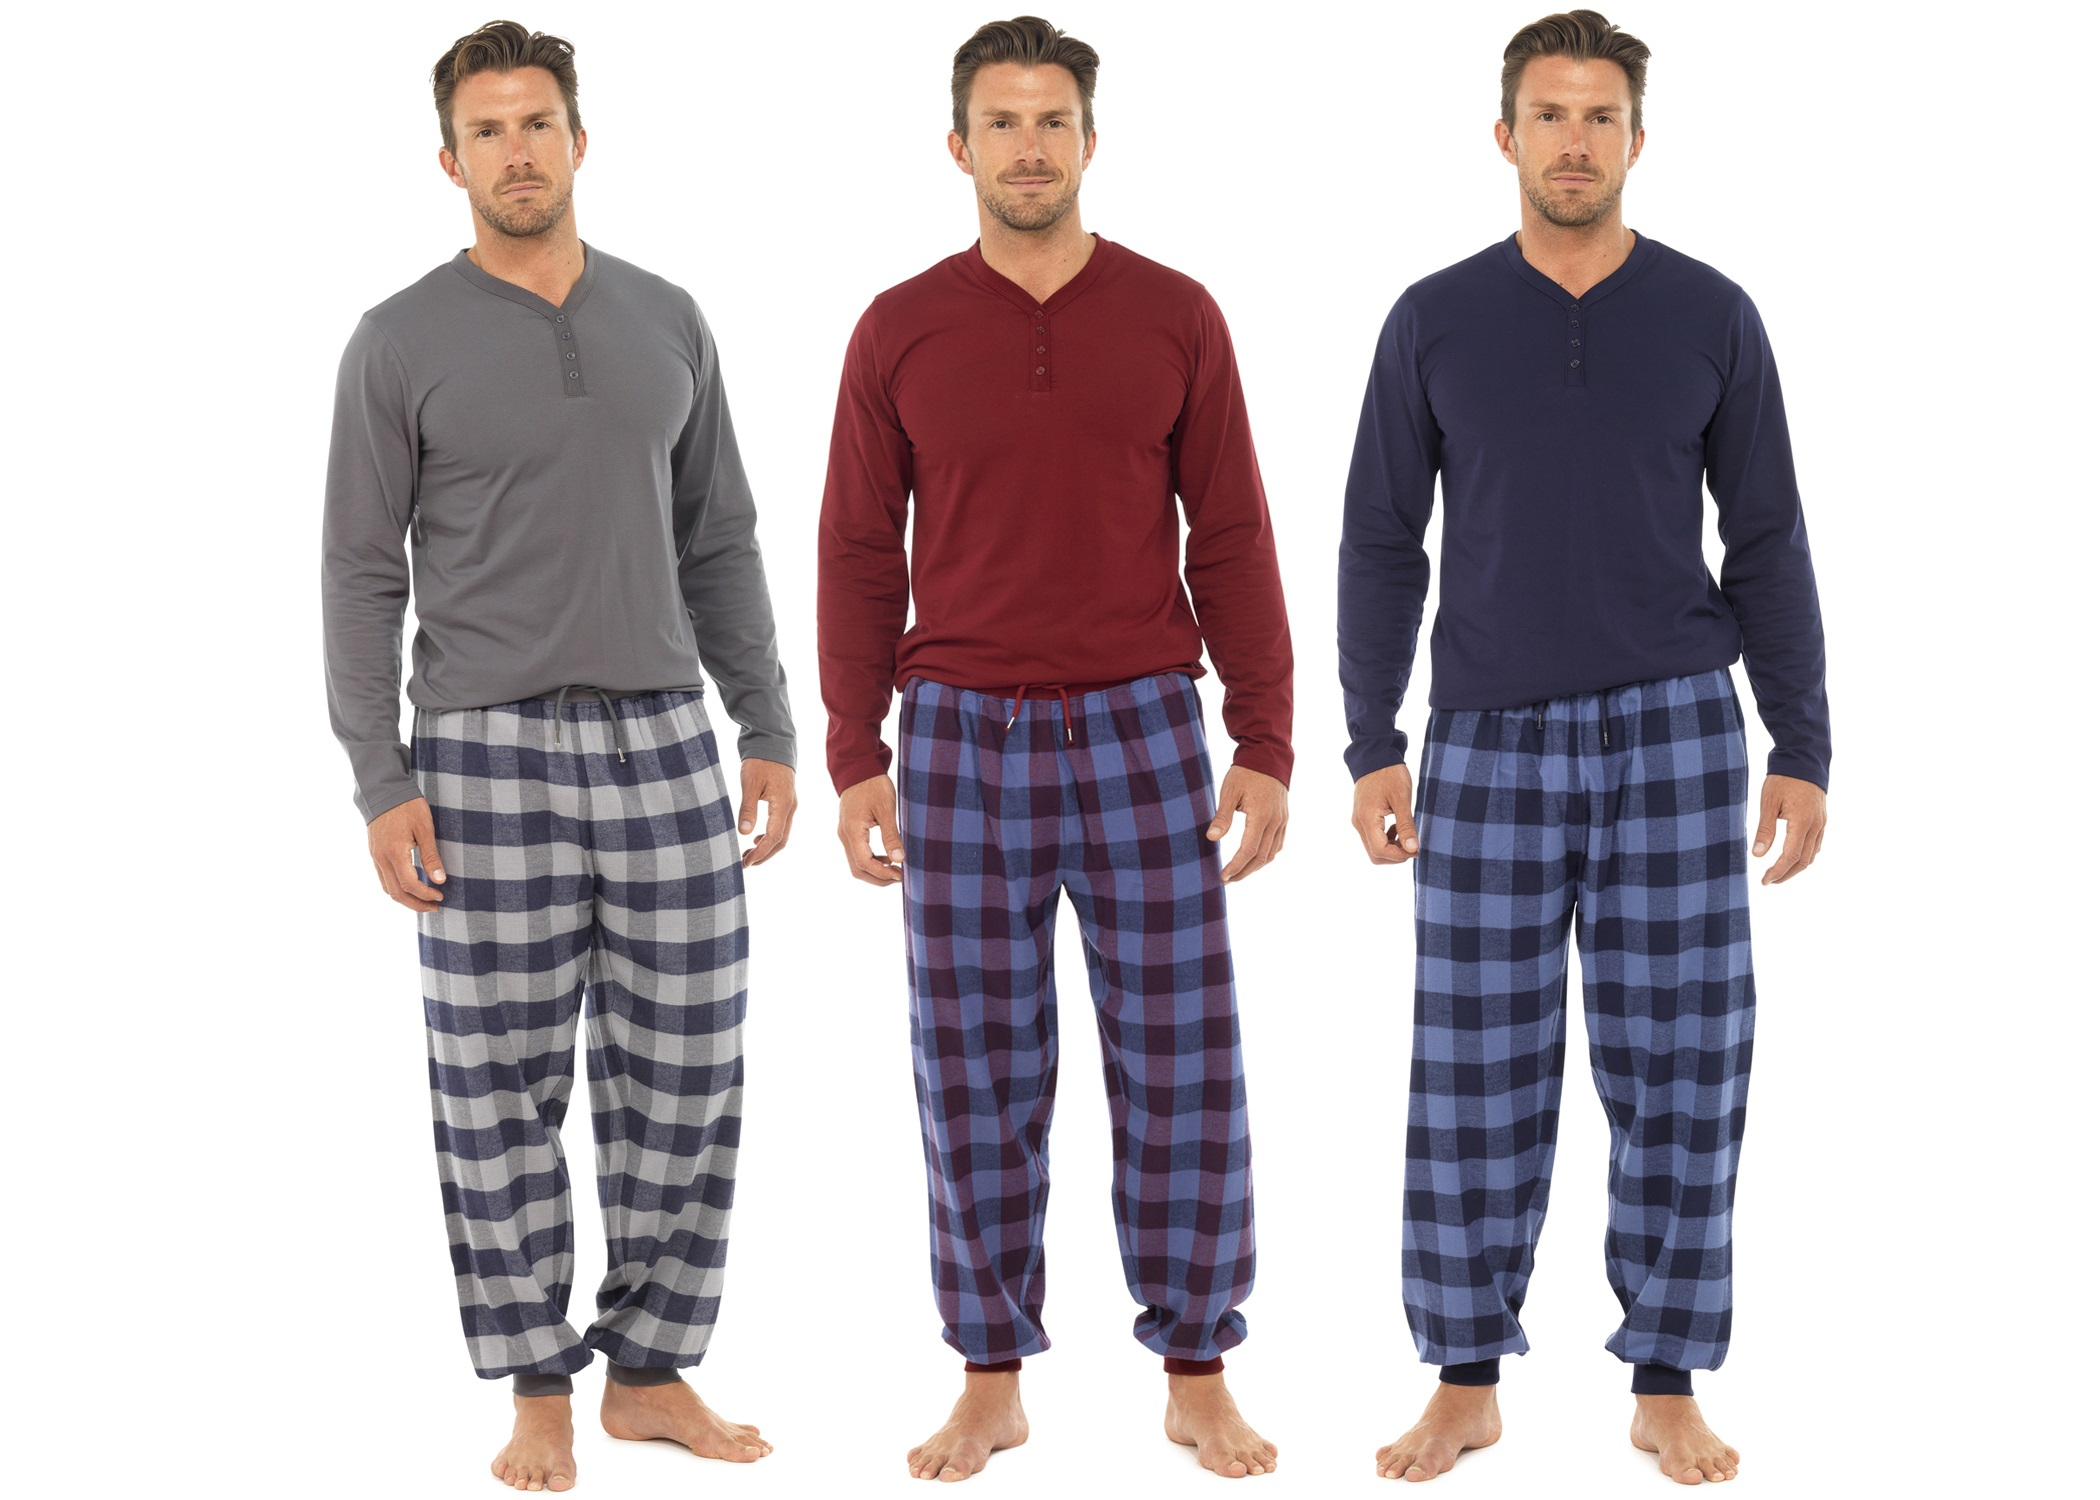 Men's Pajamas, Sleepwear & Loungewear. Your nighttime routine just got a whole lot more comfortable. With pajamas and robes that fit and feel like a dream, you'll sleep better than you ever have before.